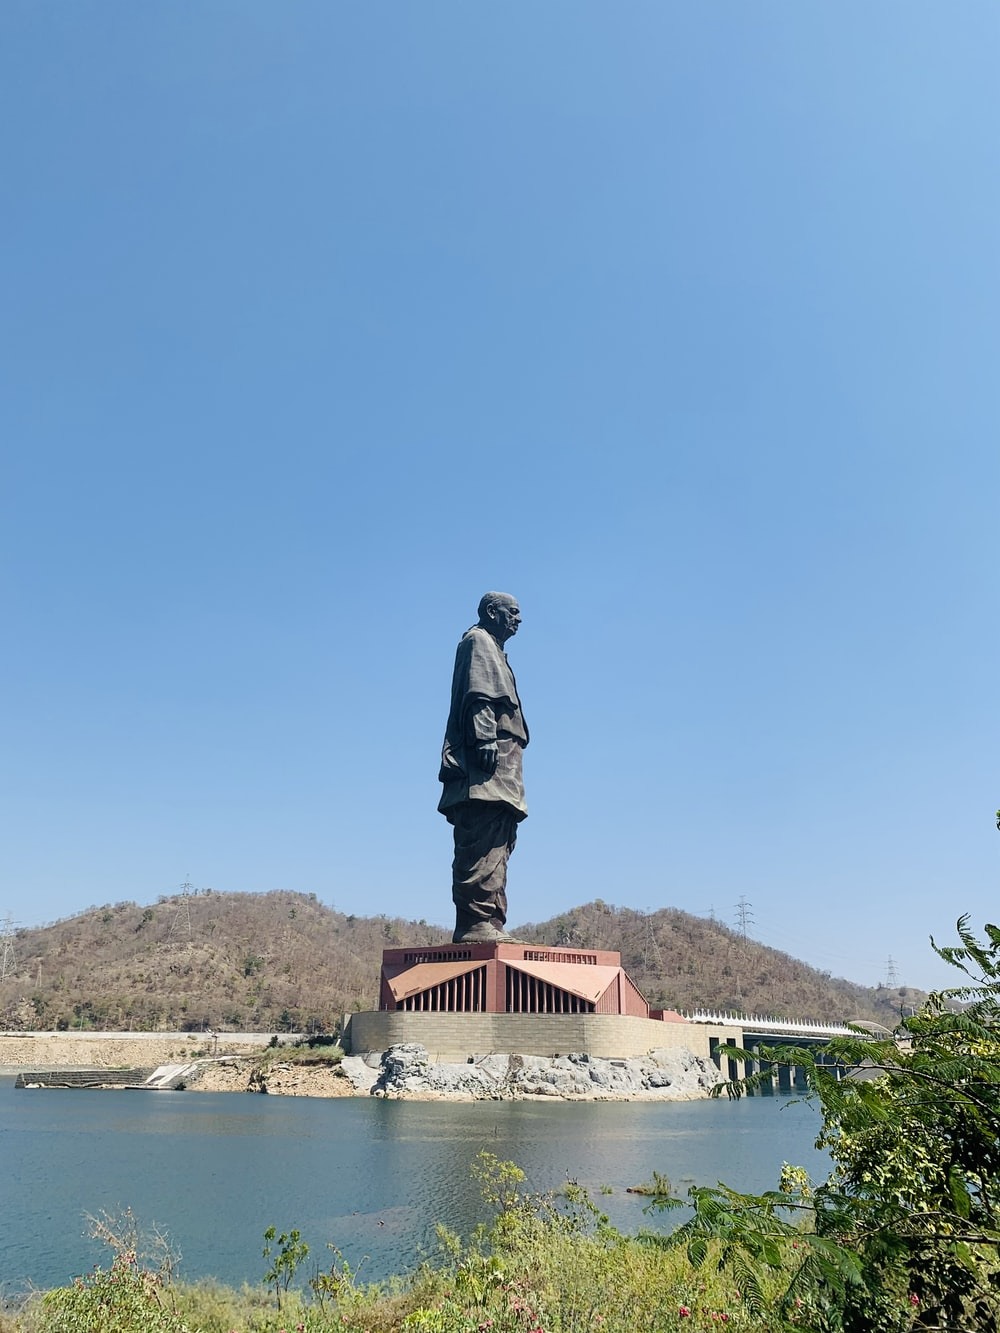 man in black jacket statue near body of water during daytime